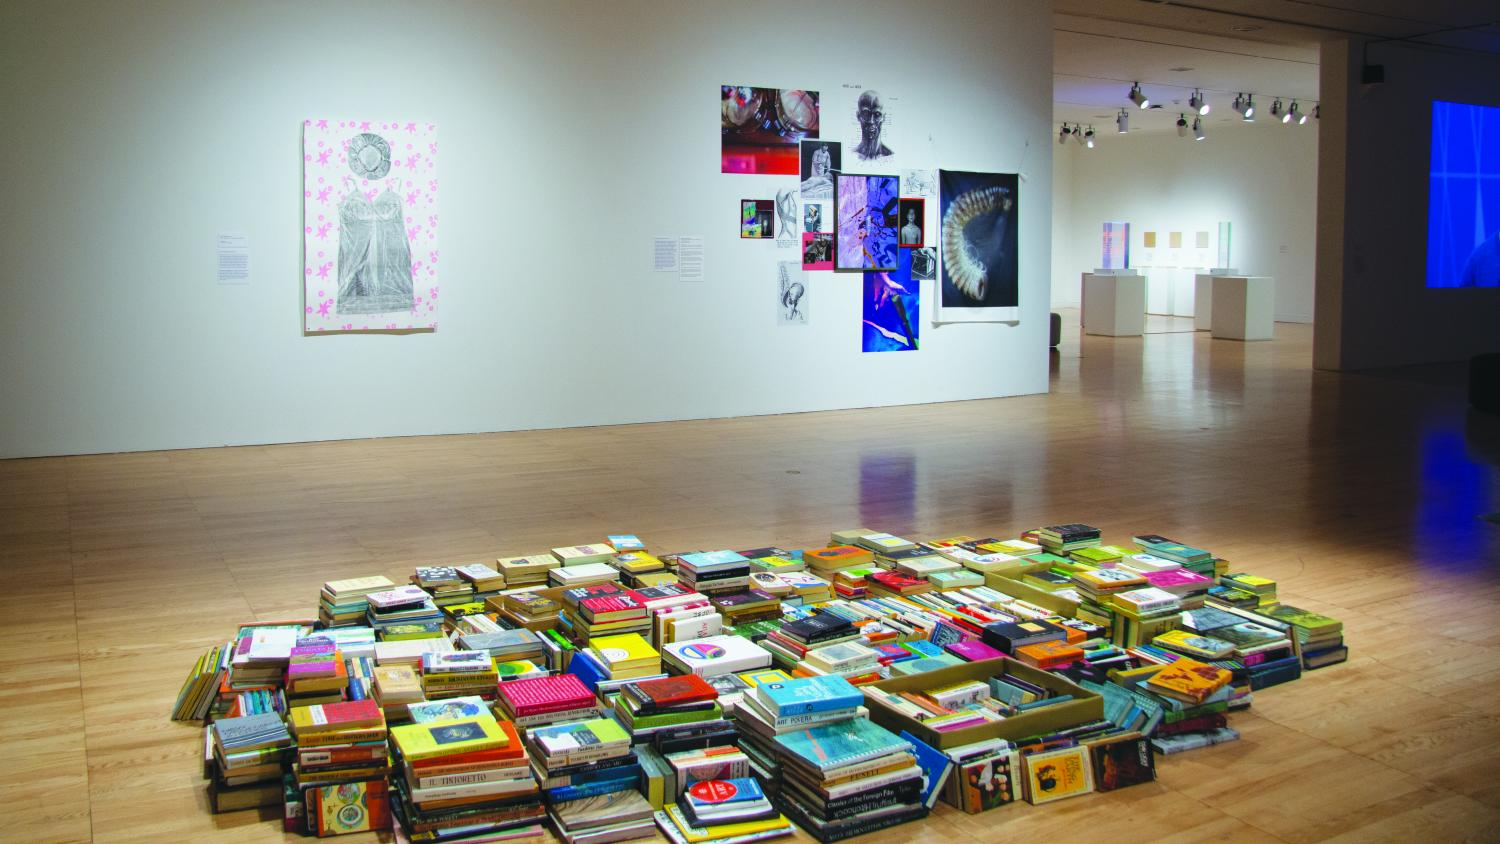 Image of an art gallery installation that contains a pile of paperback book replicas painted by Conrad Bakker and a printed imprint of a nightgown by Gwen Montgomery hangs on the opposite wall. More faculty art can be seen through a doorway.